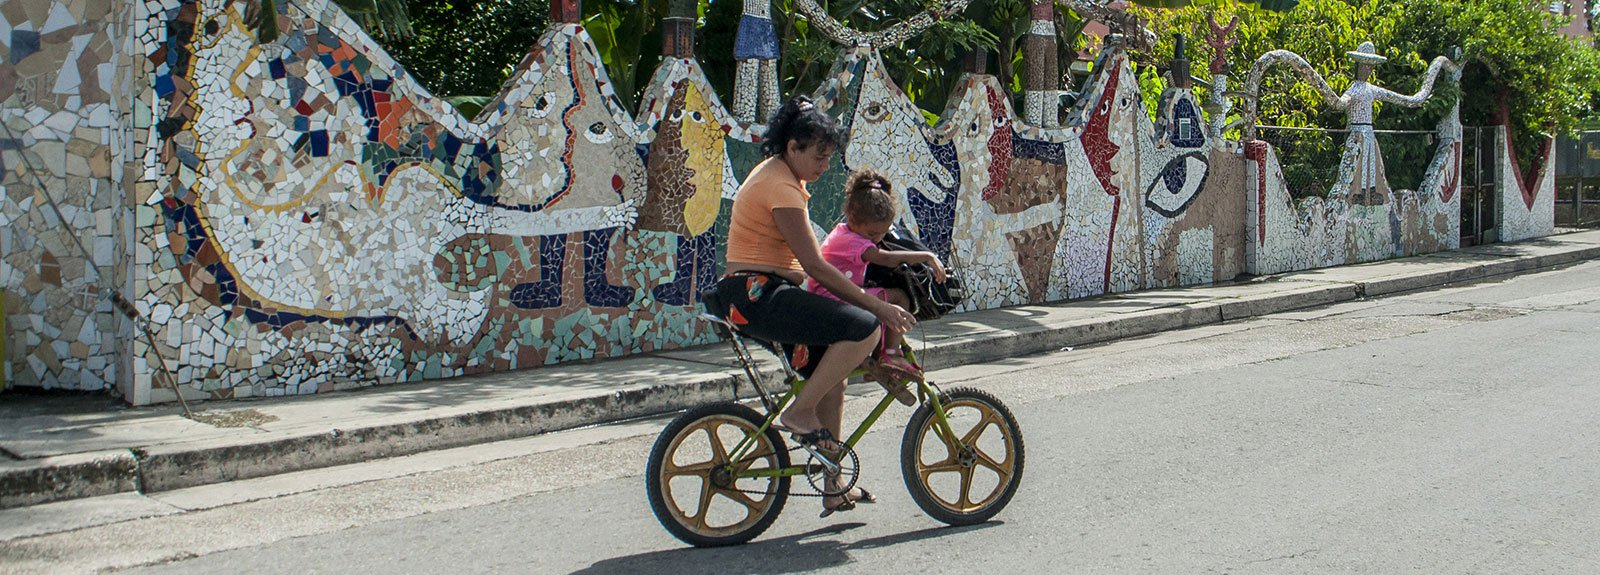 Woman on a bycicle carrying a child